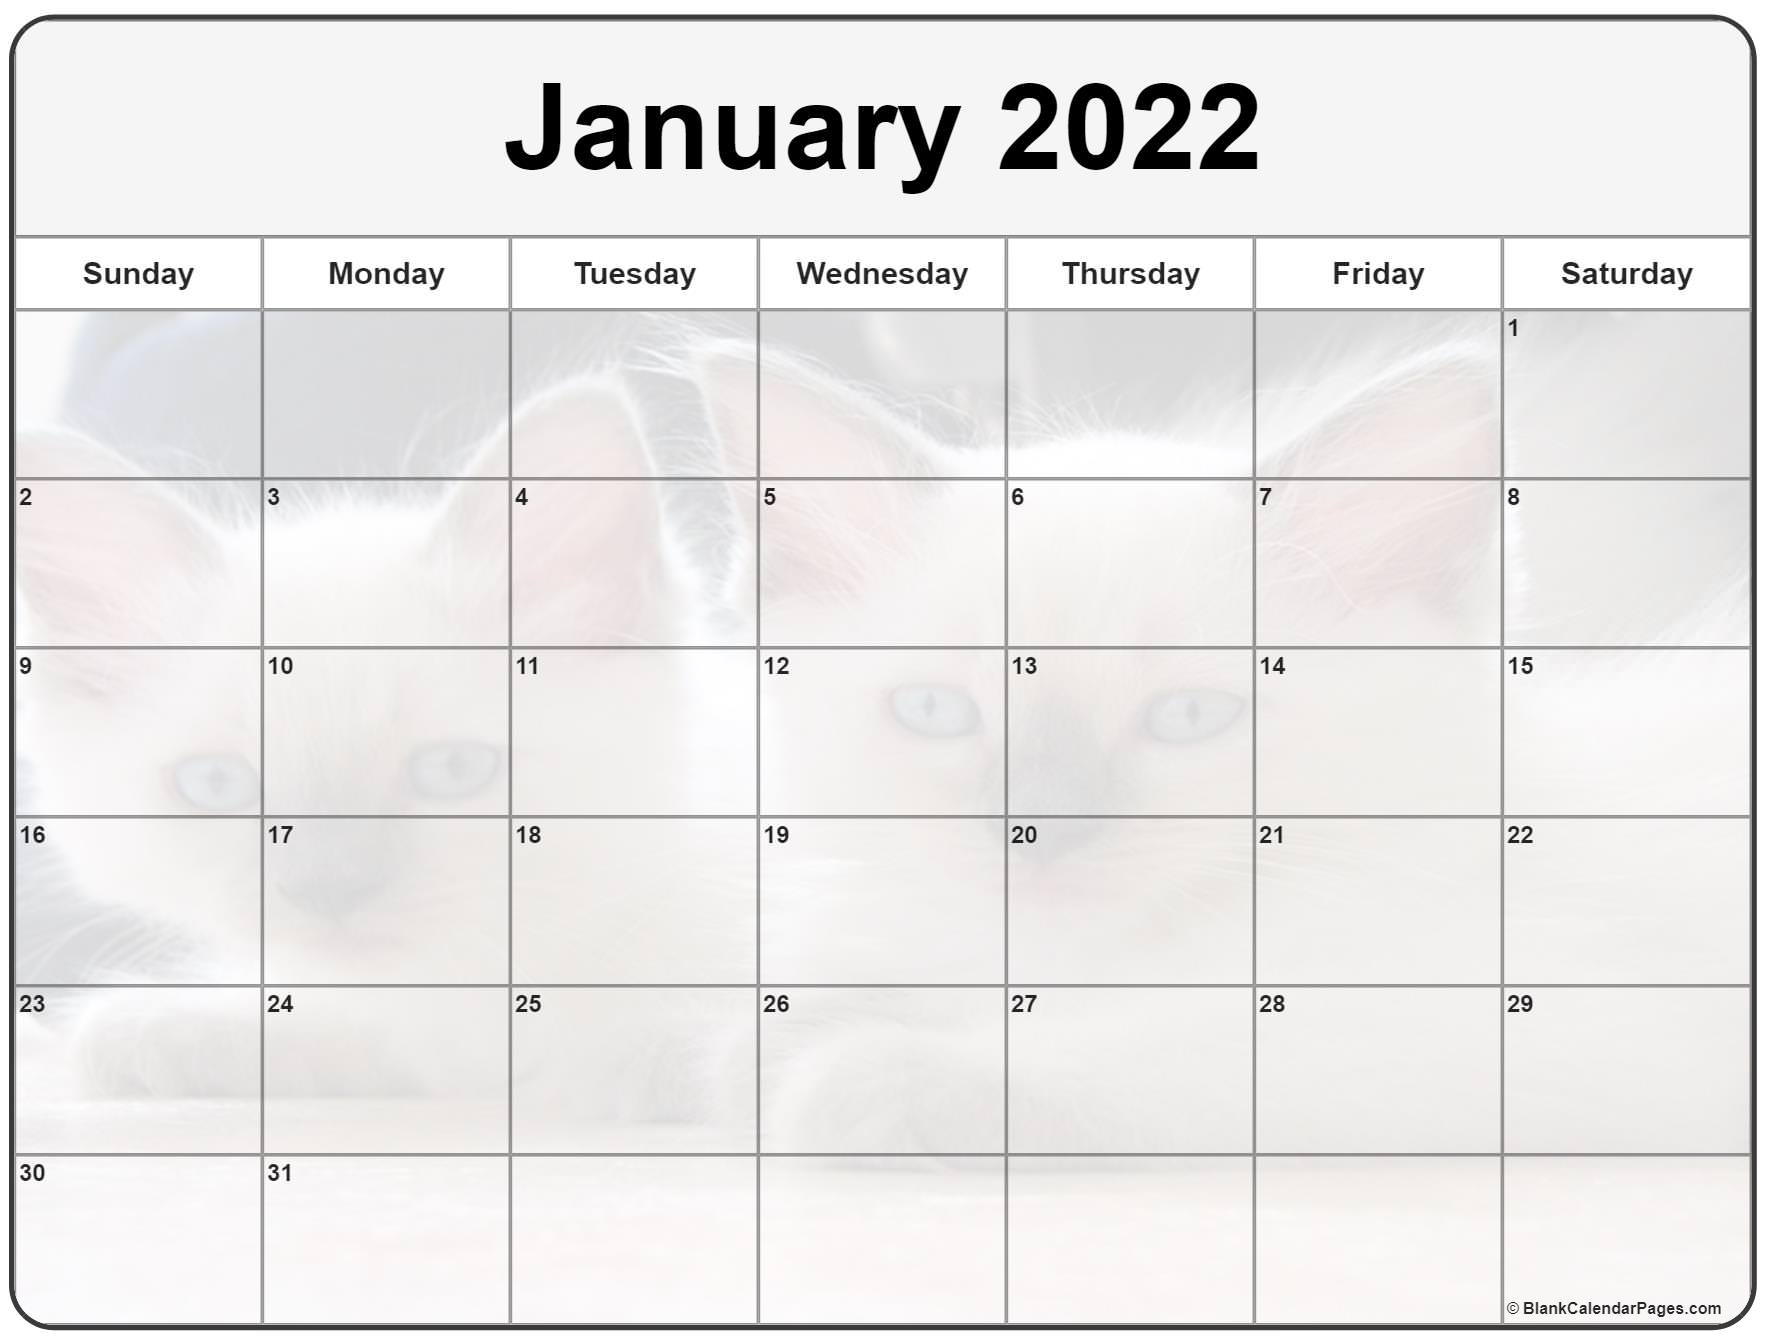 collection of january 2022 photo calendars with image filters::January 2022 Calendar Printable Free